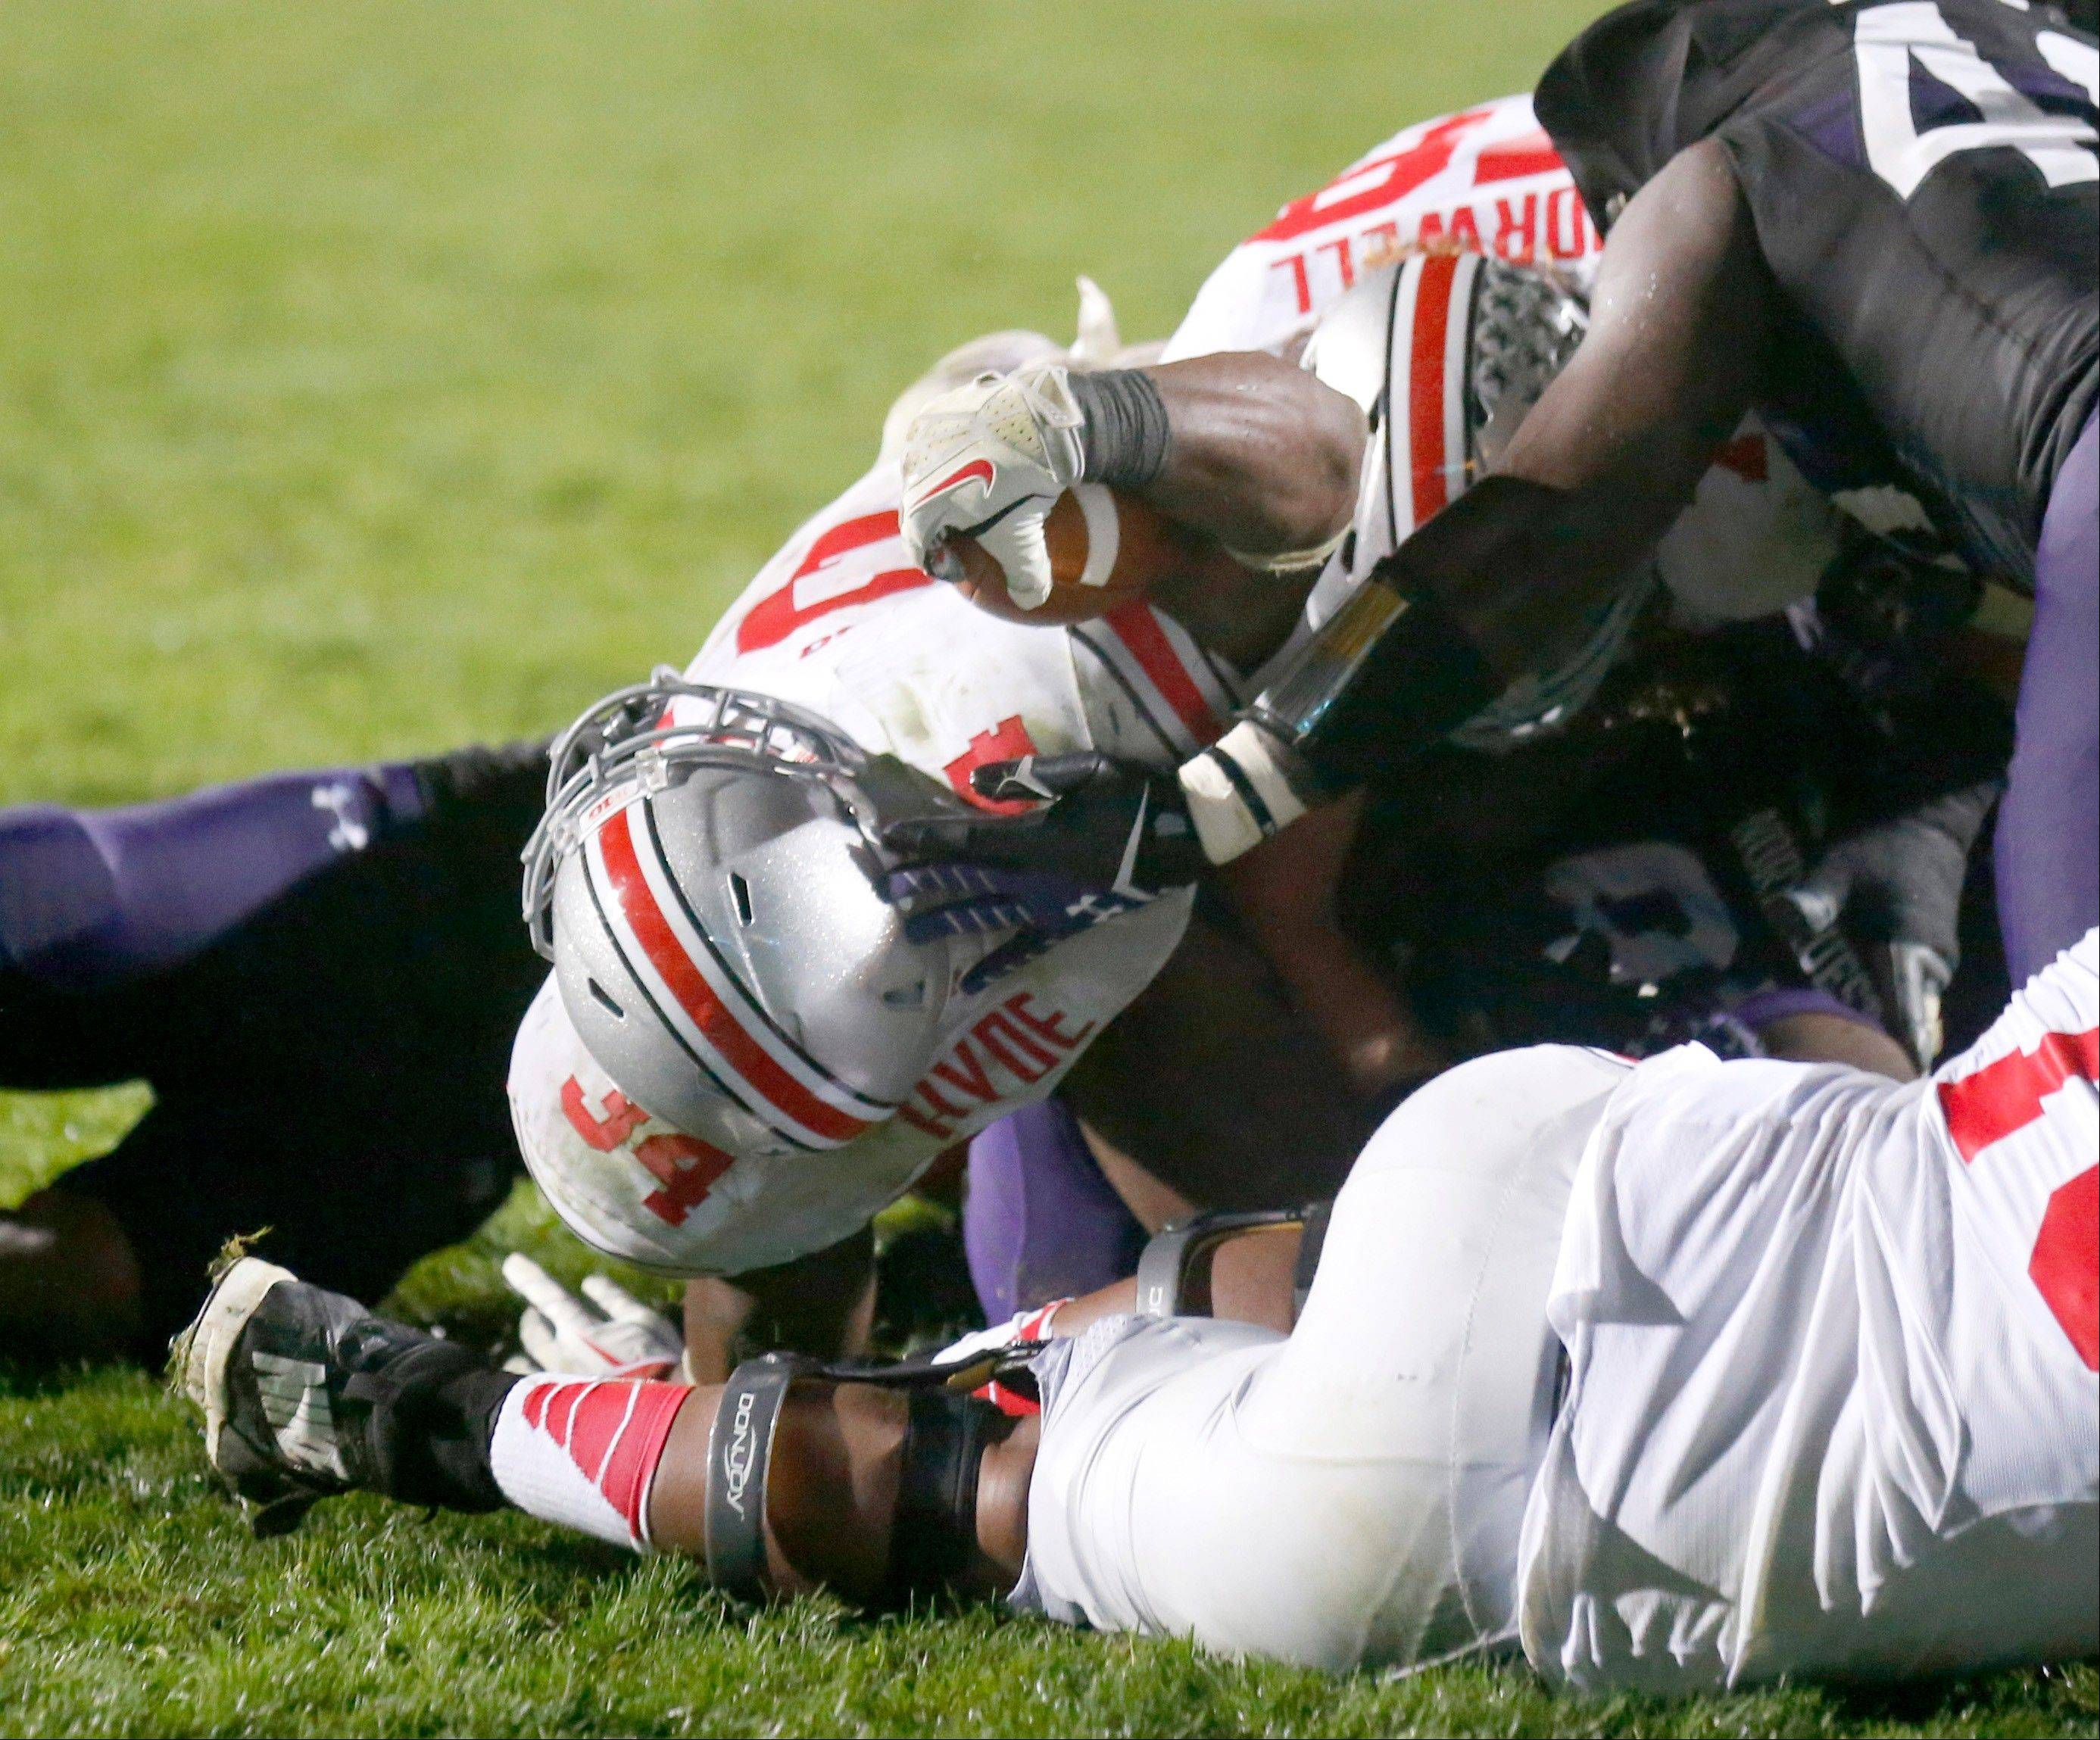 Ohio State running back Carlos Hyde stretches the ball over the goal line for a touchdown, as determined by video review, in the fourth quarter Saturday night against Northwestern.